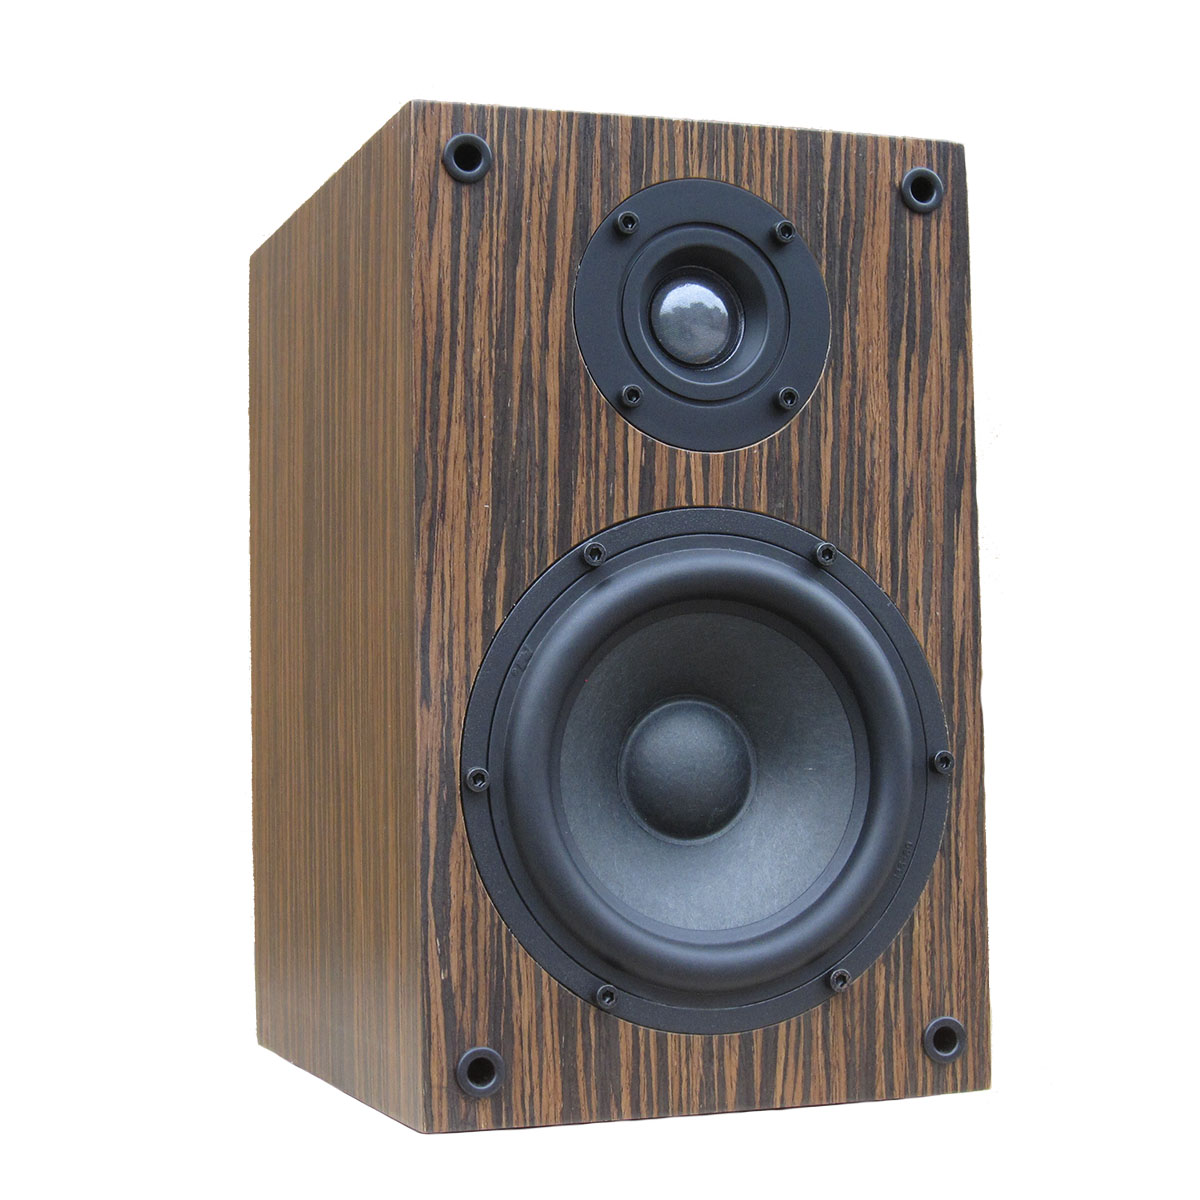 [The goods stop production and no stock]Hifi 5-inch bookshelf speaker monitors sound-to-box Explorer 1